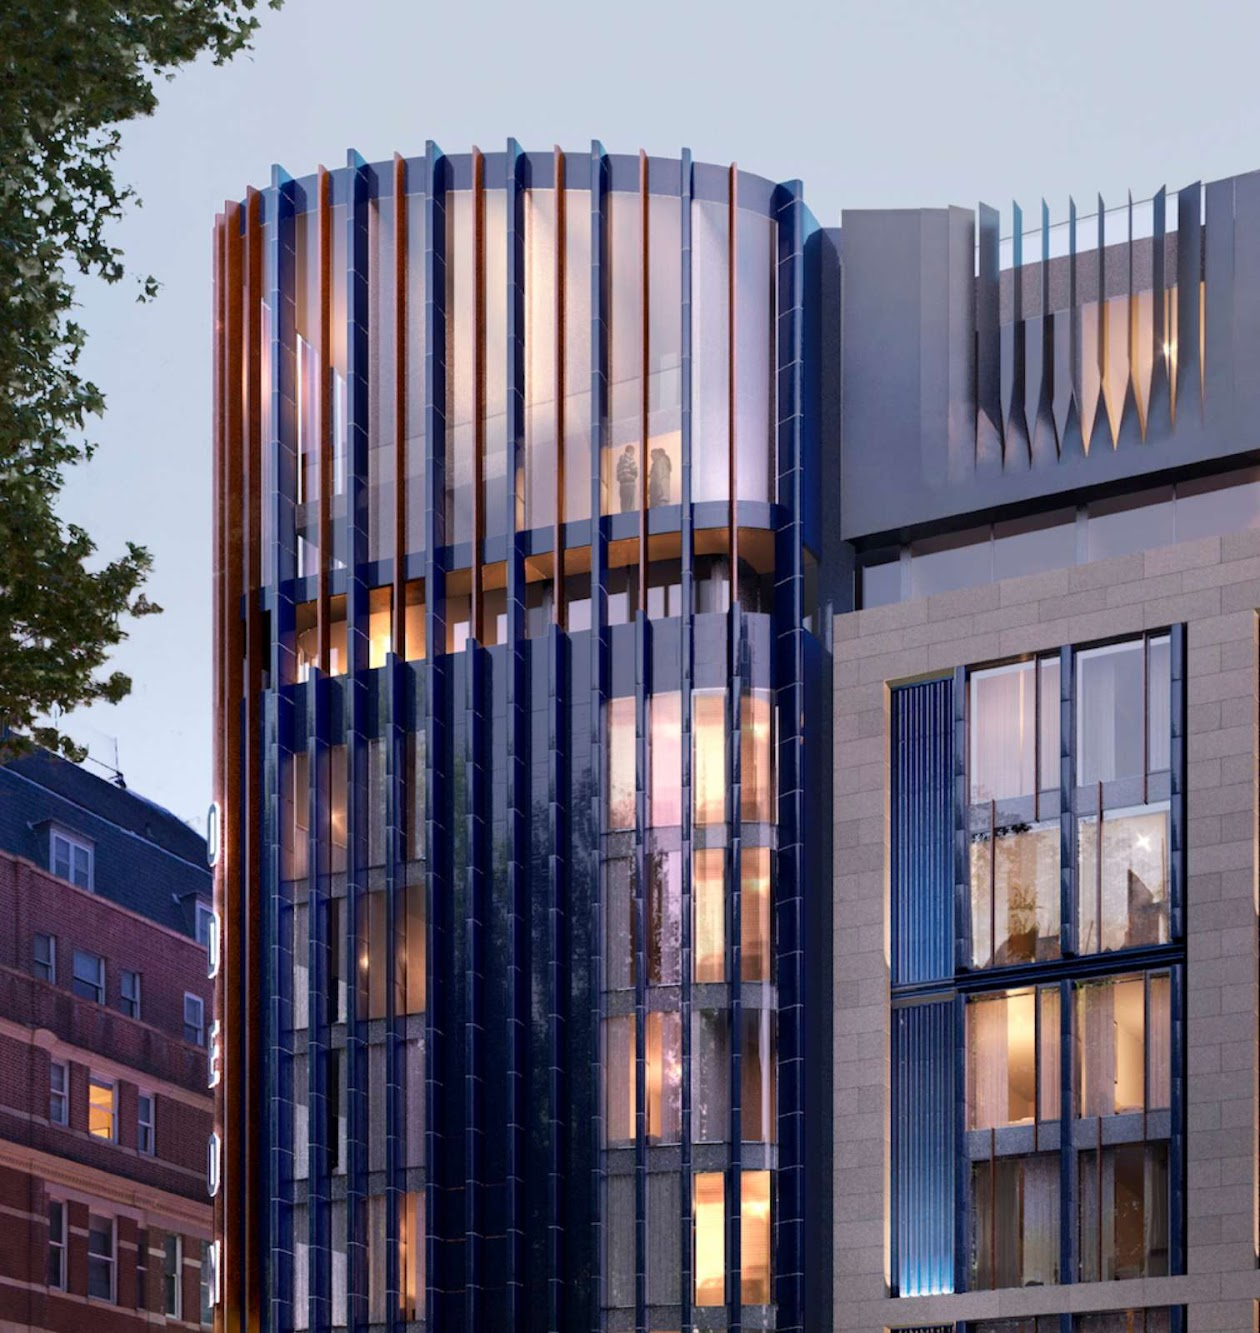 05-Hotel-plans-in-London's-Leicester-Square-by-Woods-Bagot